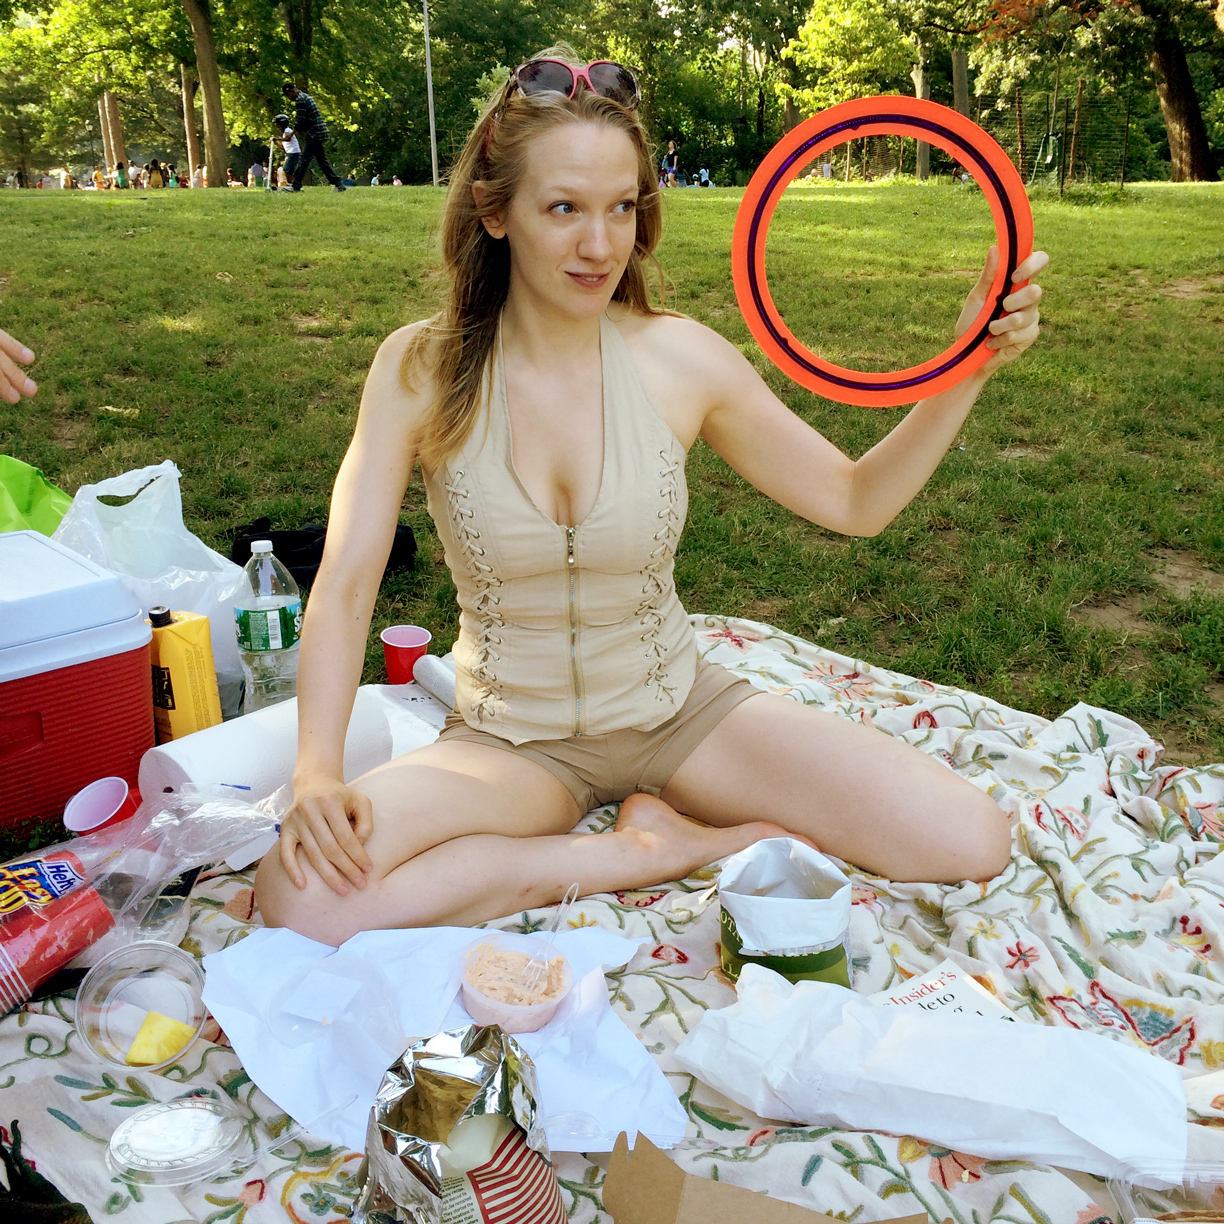 Emily Carmichael's Summer Picnic with Andrew Semans